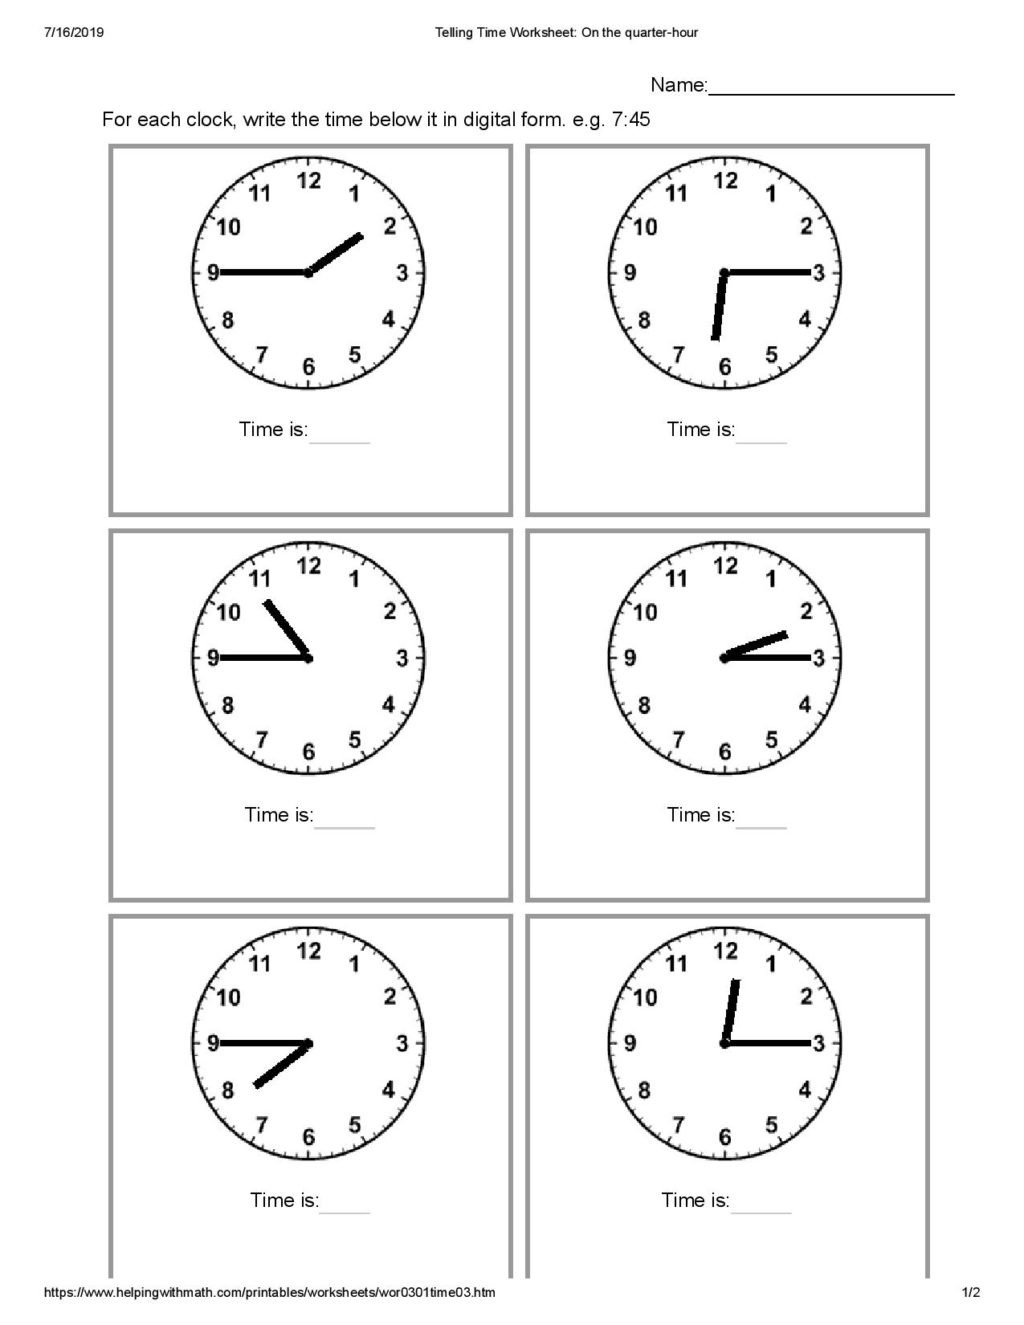 Pronouns Worksheet 2nd Grade Worksheet 2nd Grade Telling Time Mathorksheet